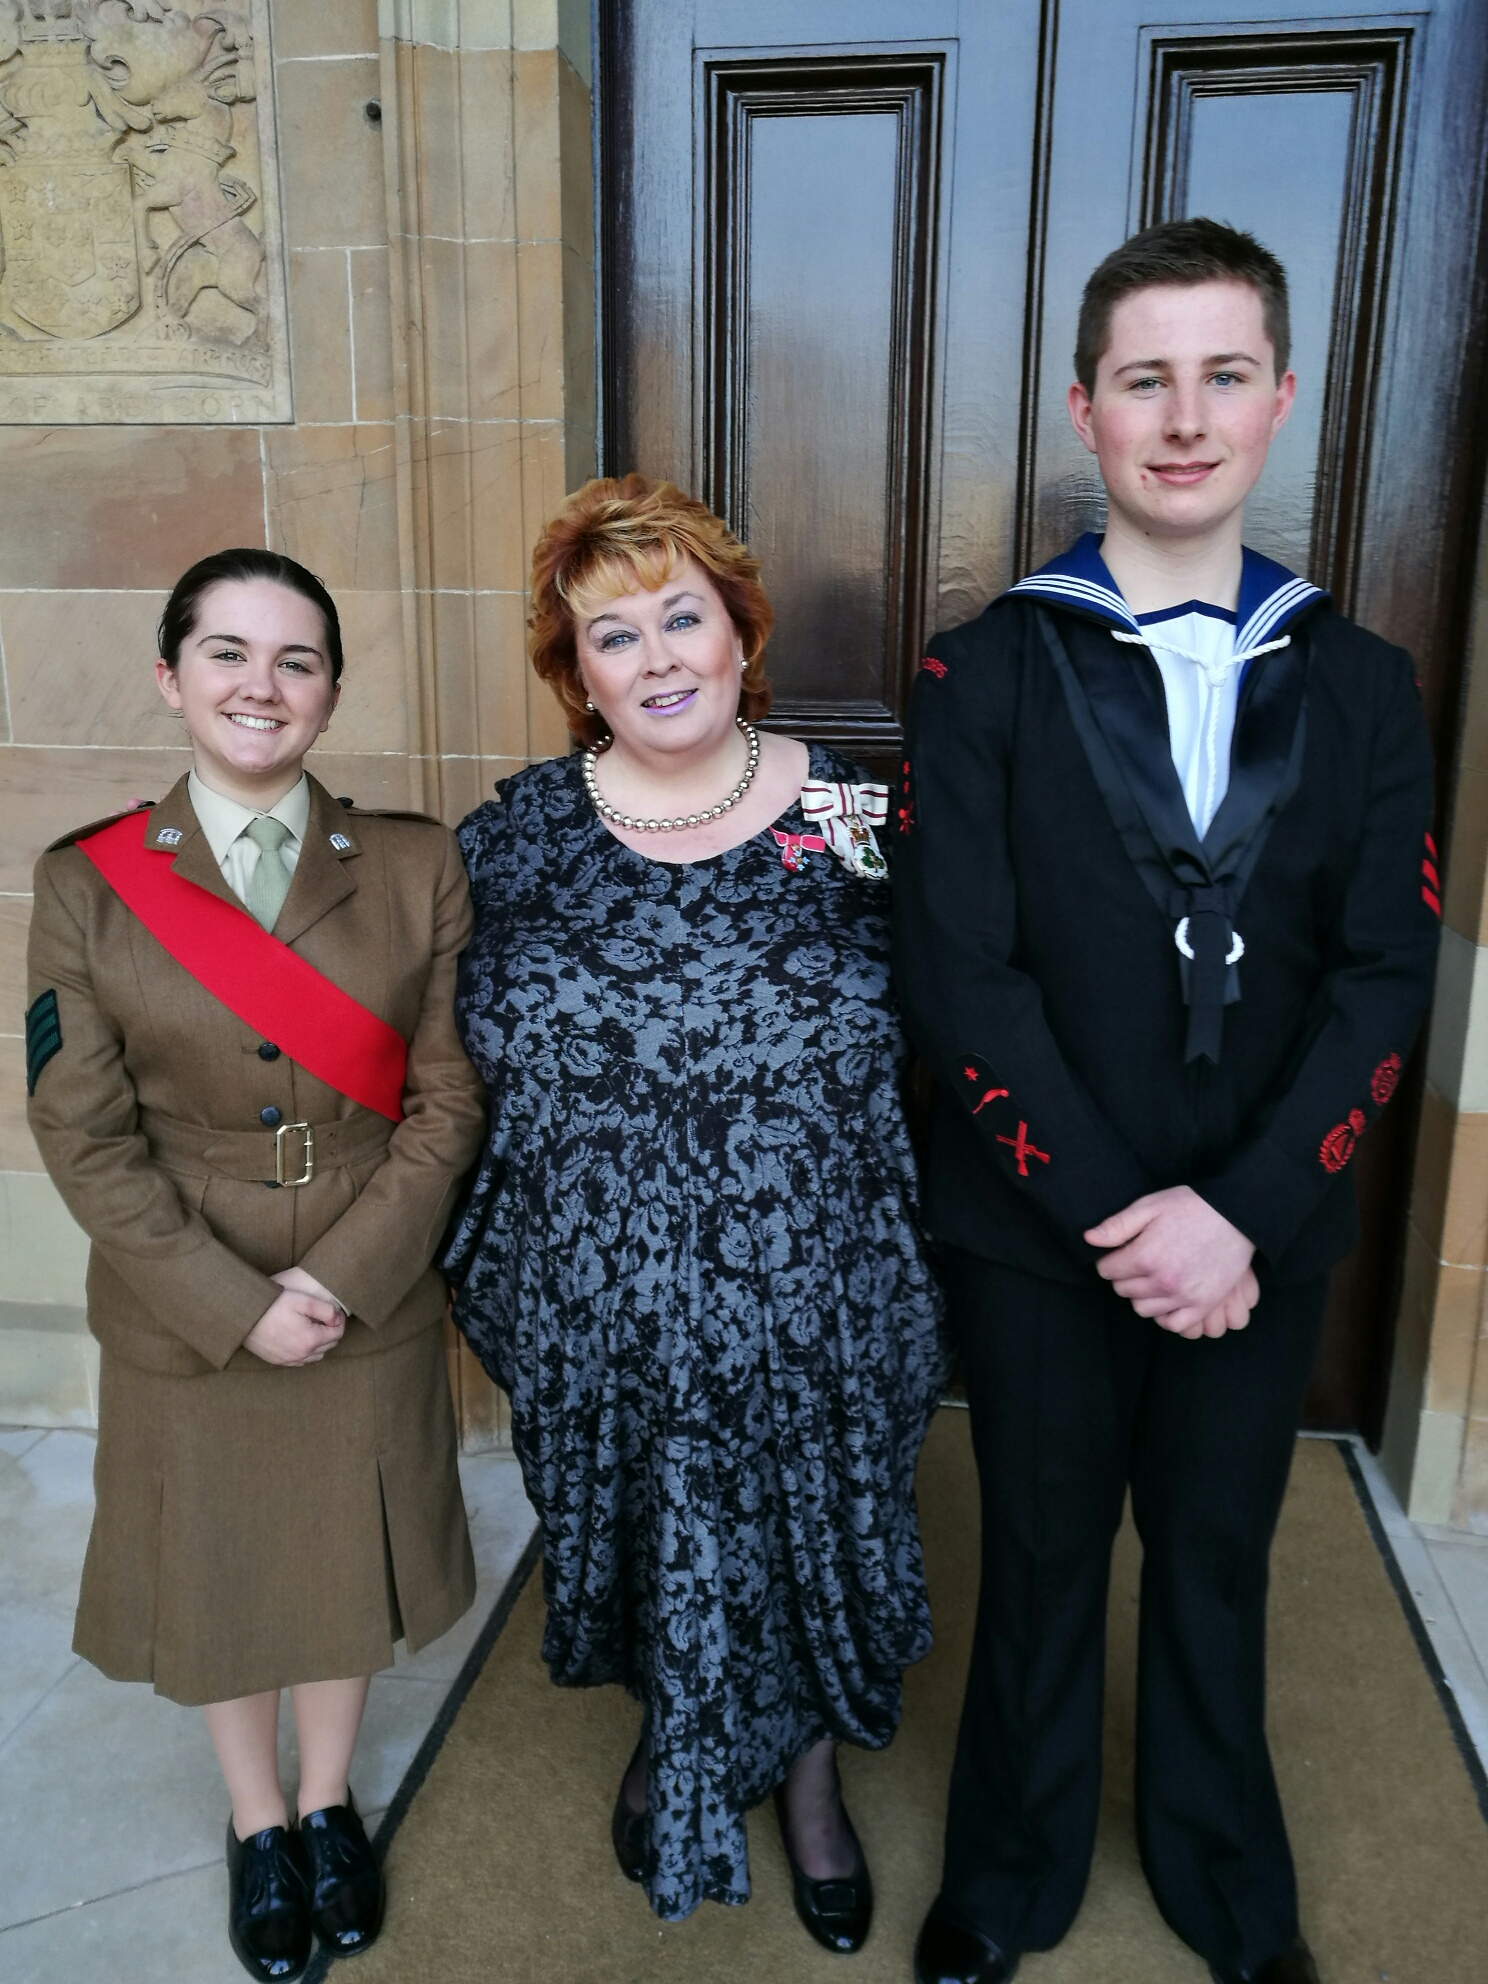 Leading Sea Cadet Patrick Cush and Cadet Sgt Chloe McCrory pictured with Lord Lieutenant Mrs Fionnuala Jay-O'Boyle CBE at a recent investiture ceremony at Hillsborough Castle.